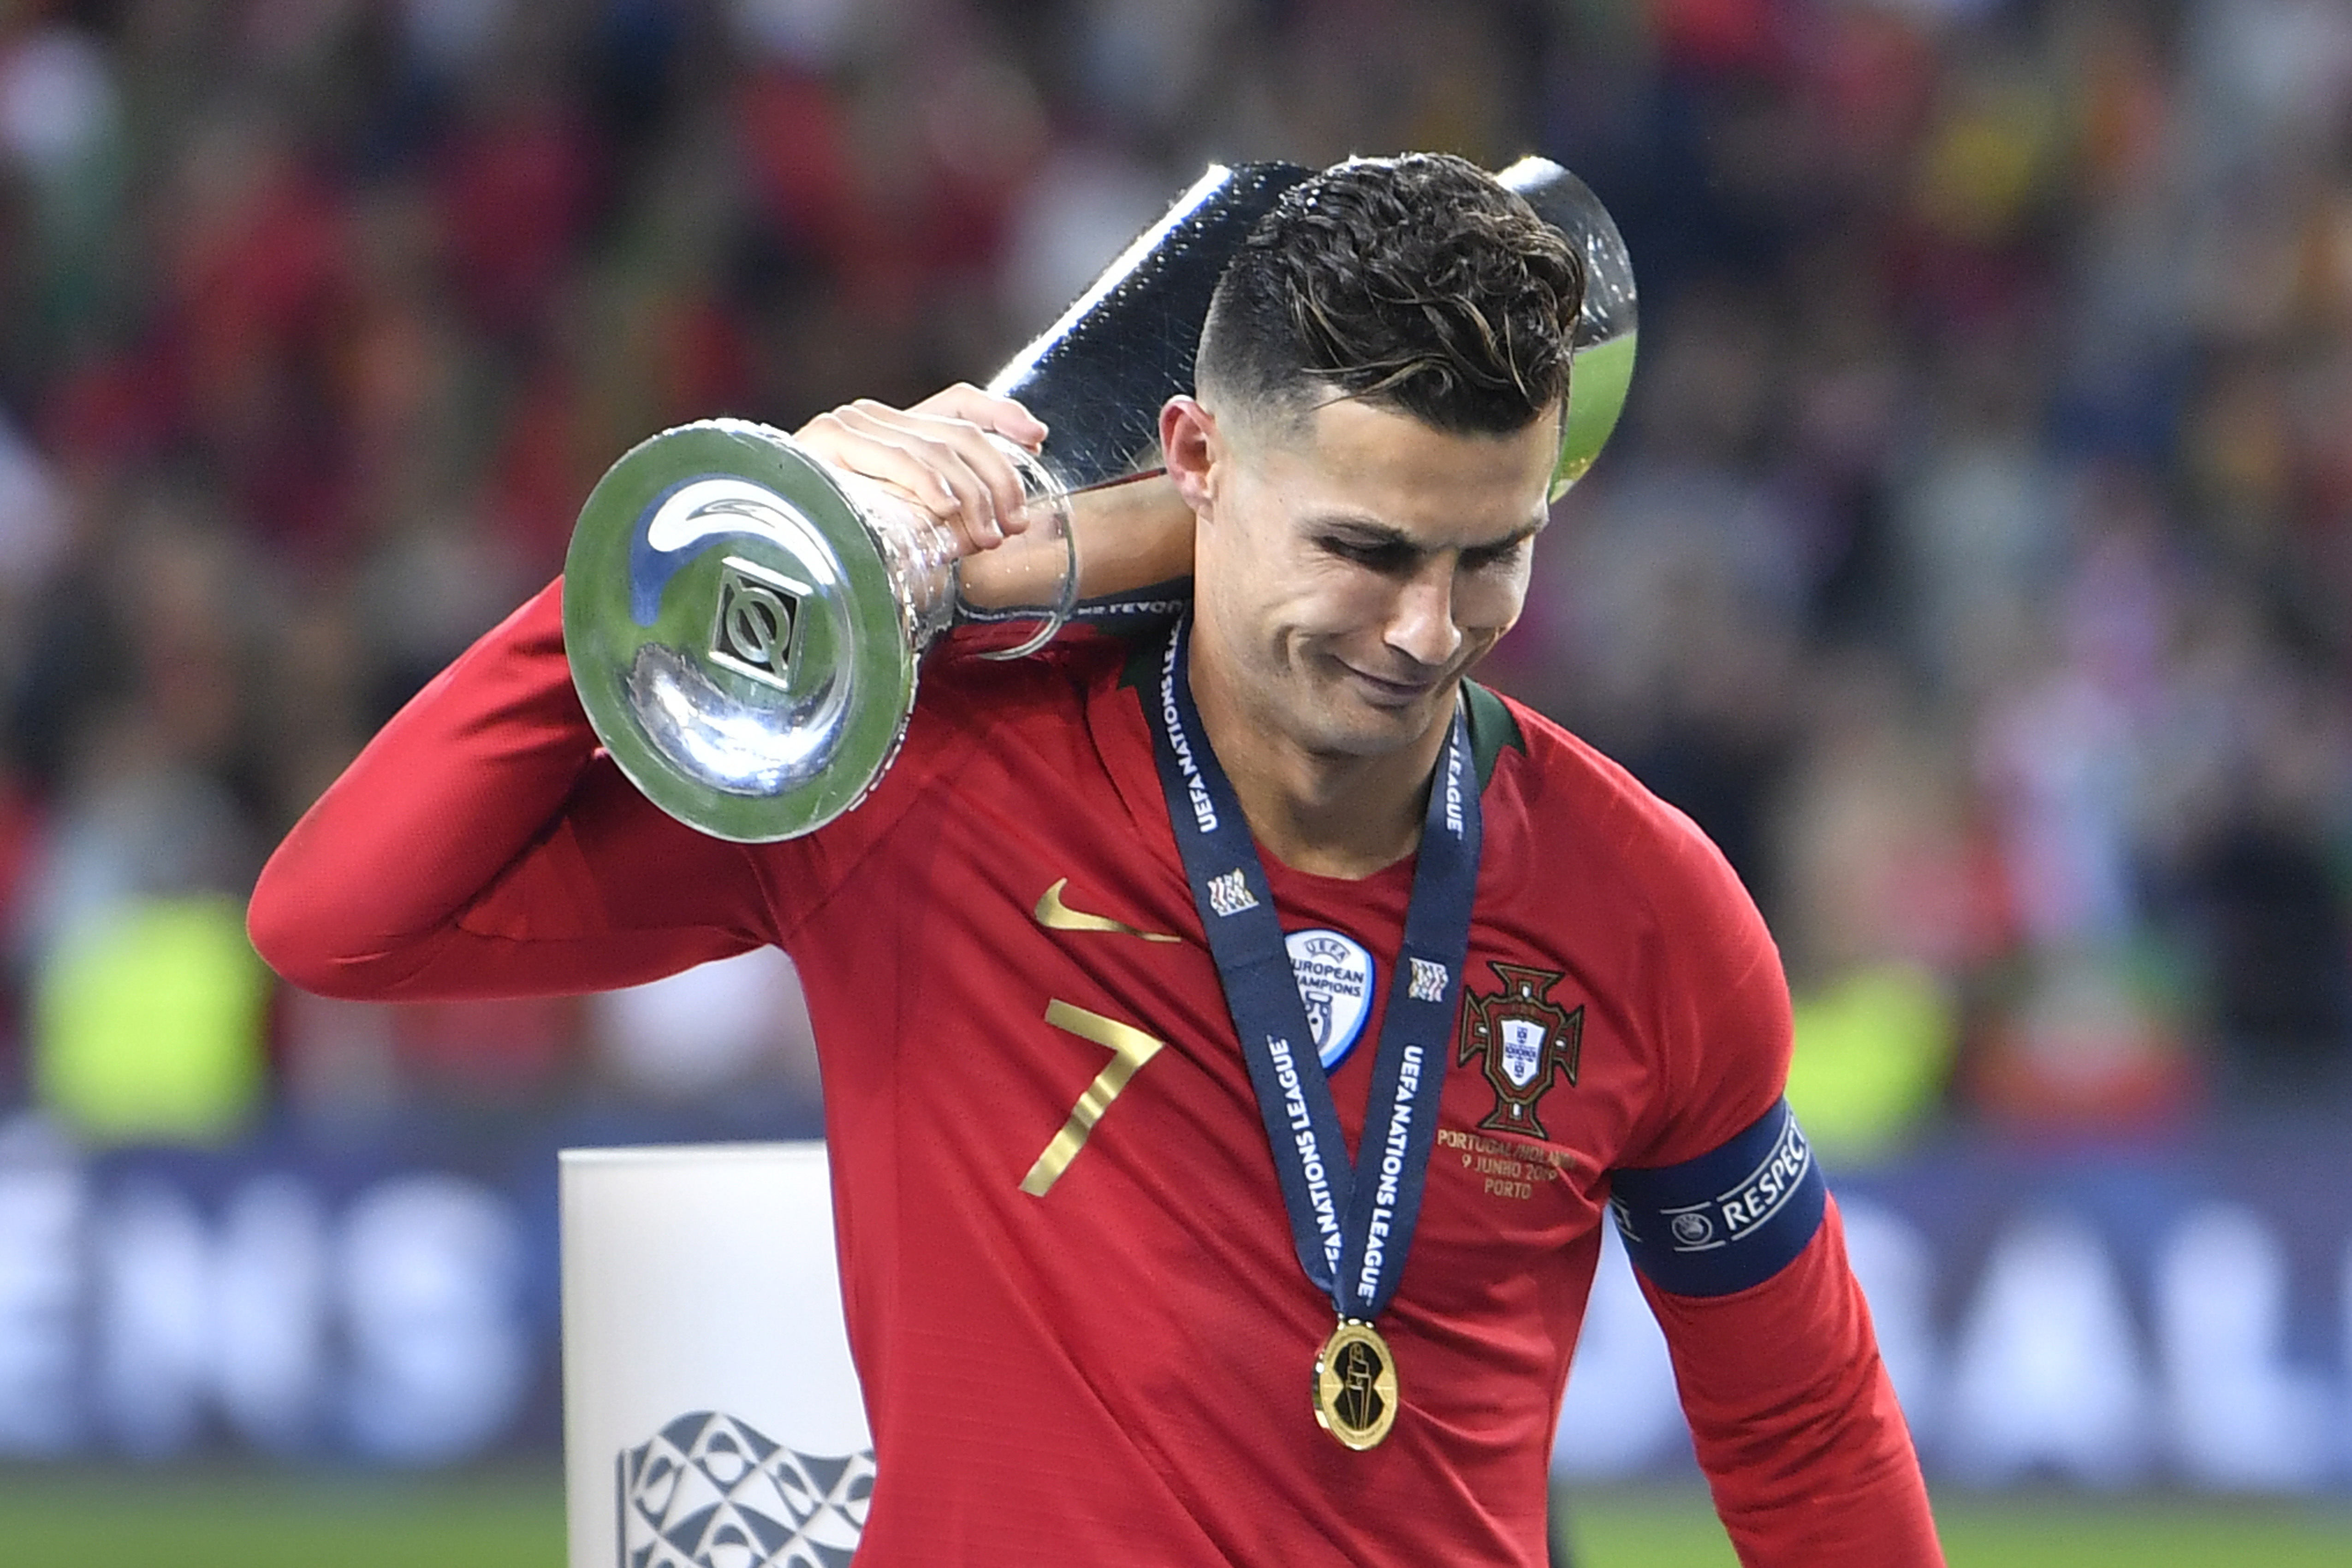 Cristiano Ronaldo Has Won More Uefa Trophies Than Any Other Player Sportbible